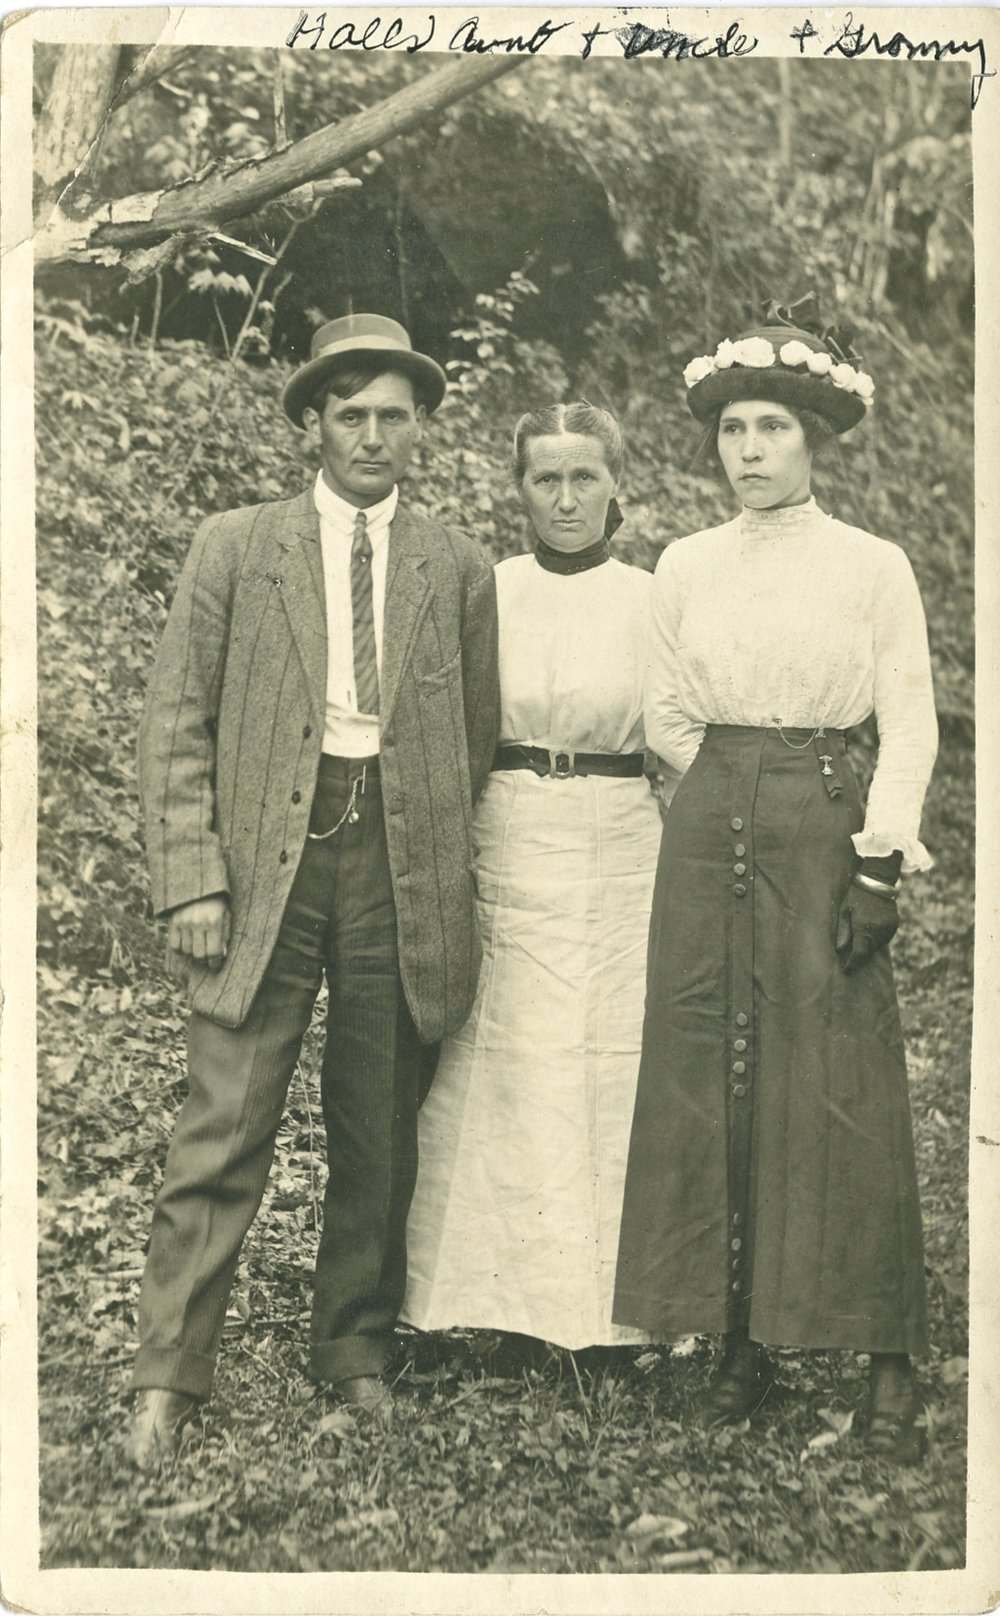 Relatives of some description dressed to the nines (remember this is way out the way in rural Appalachia)